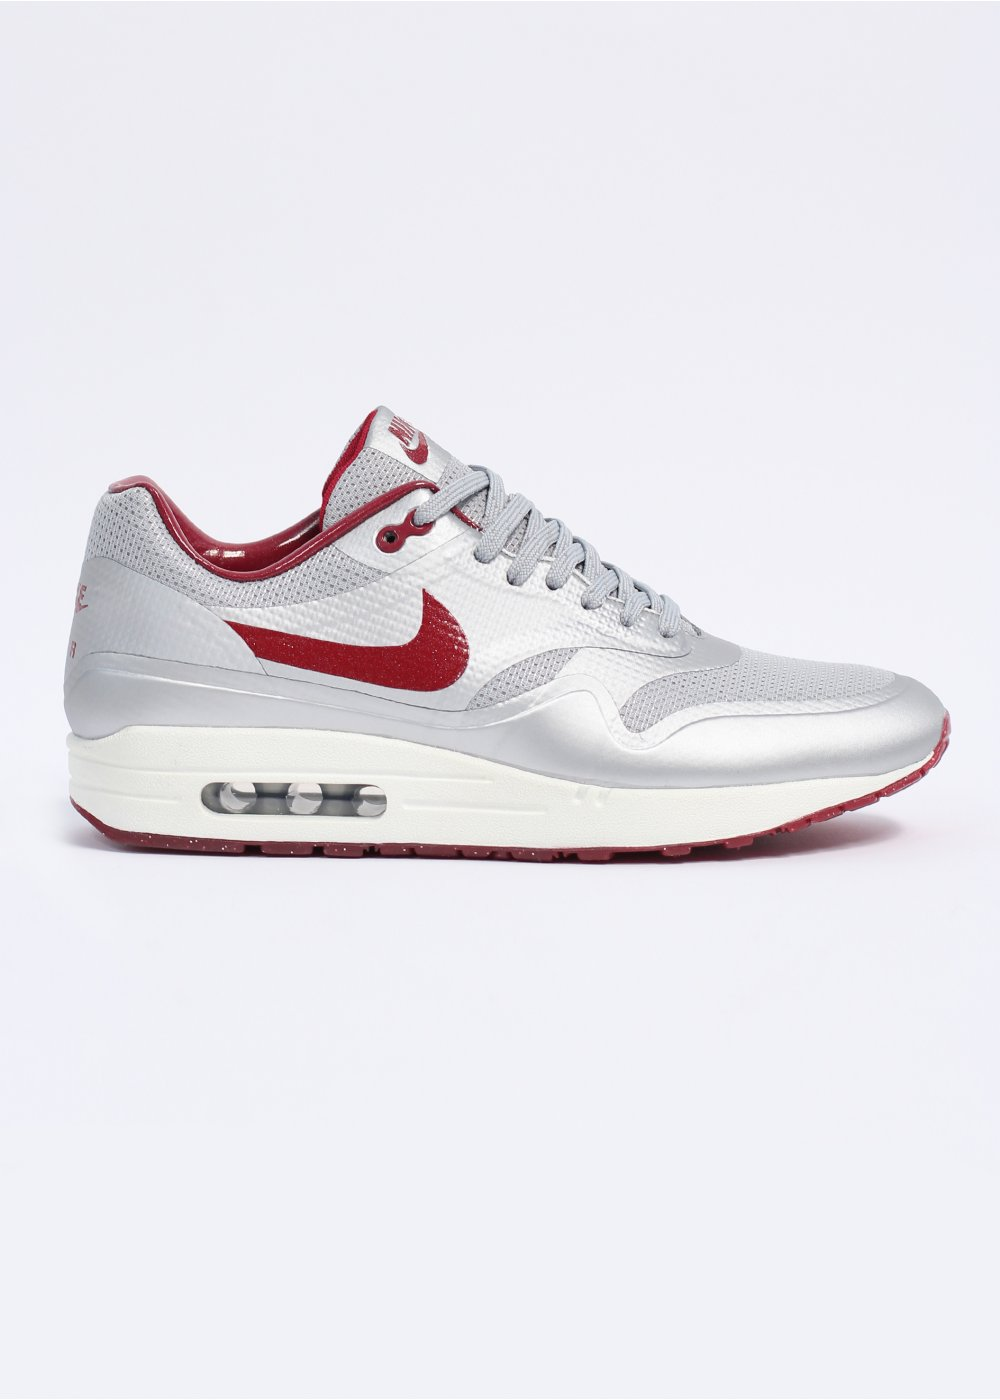 78d51515d8 Air Max 1 Hyperfuse HYP QS Trainers - Metallic Silver / Deep Red